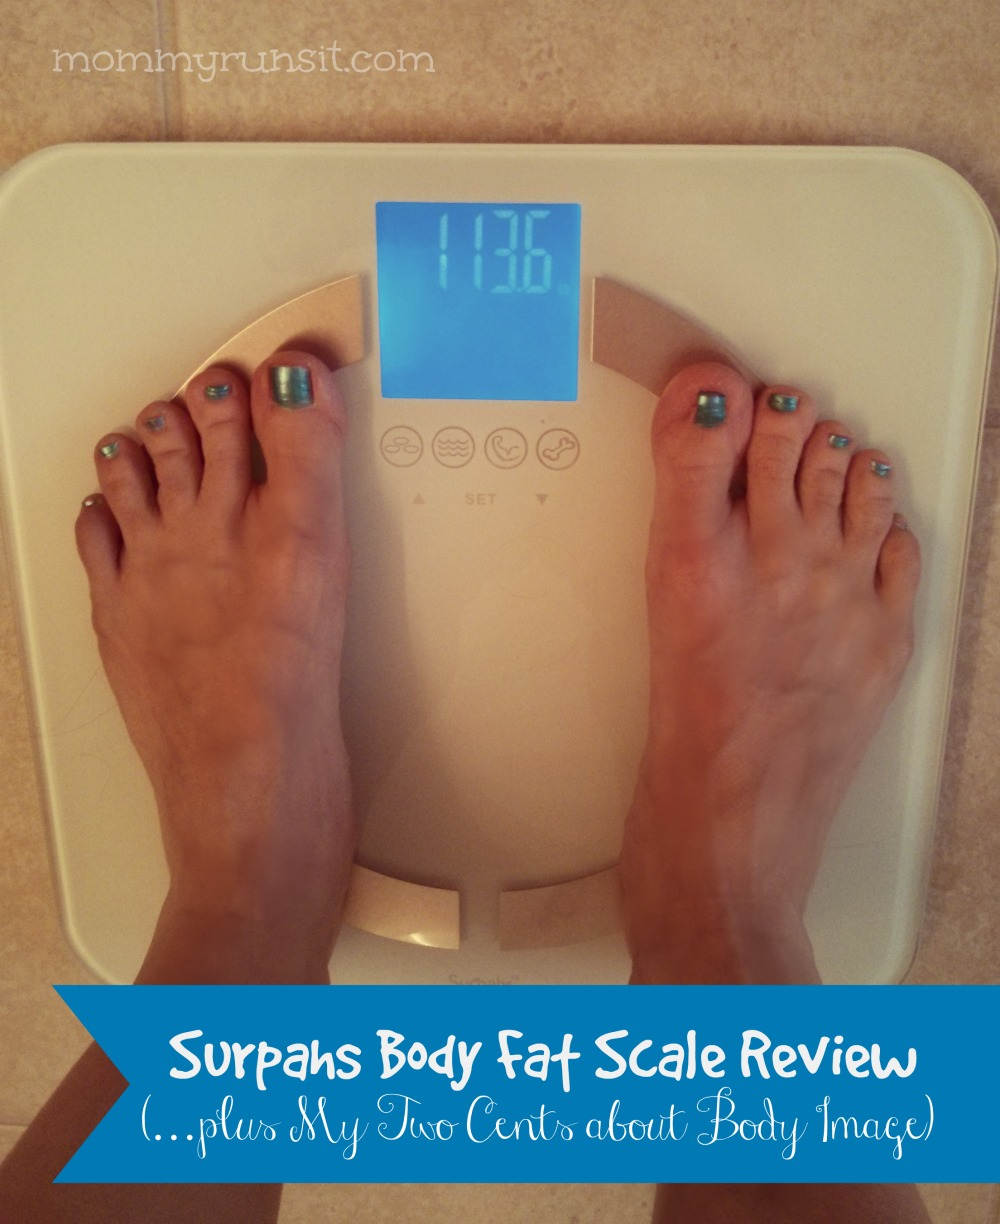 Surpahs Body Fat Scale Review (…plus My Two Cents about Body Image) | Mommy Runs It